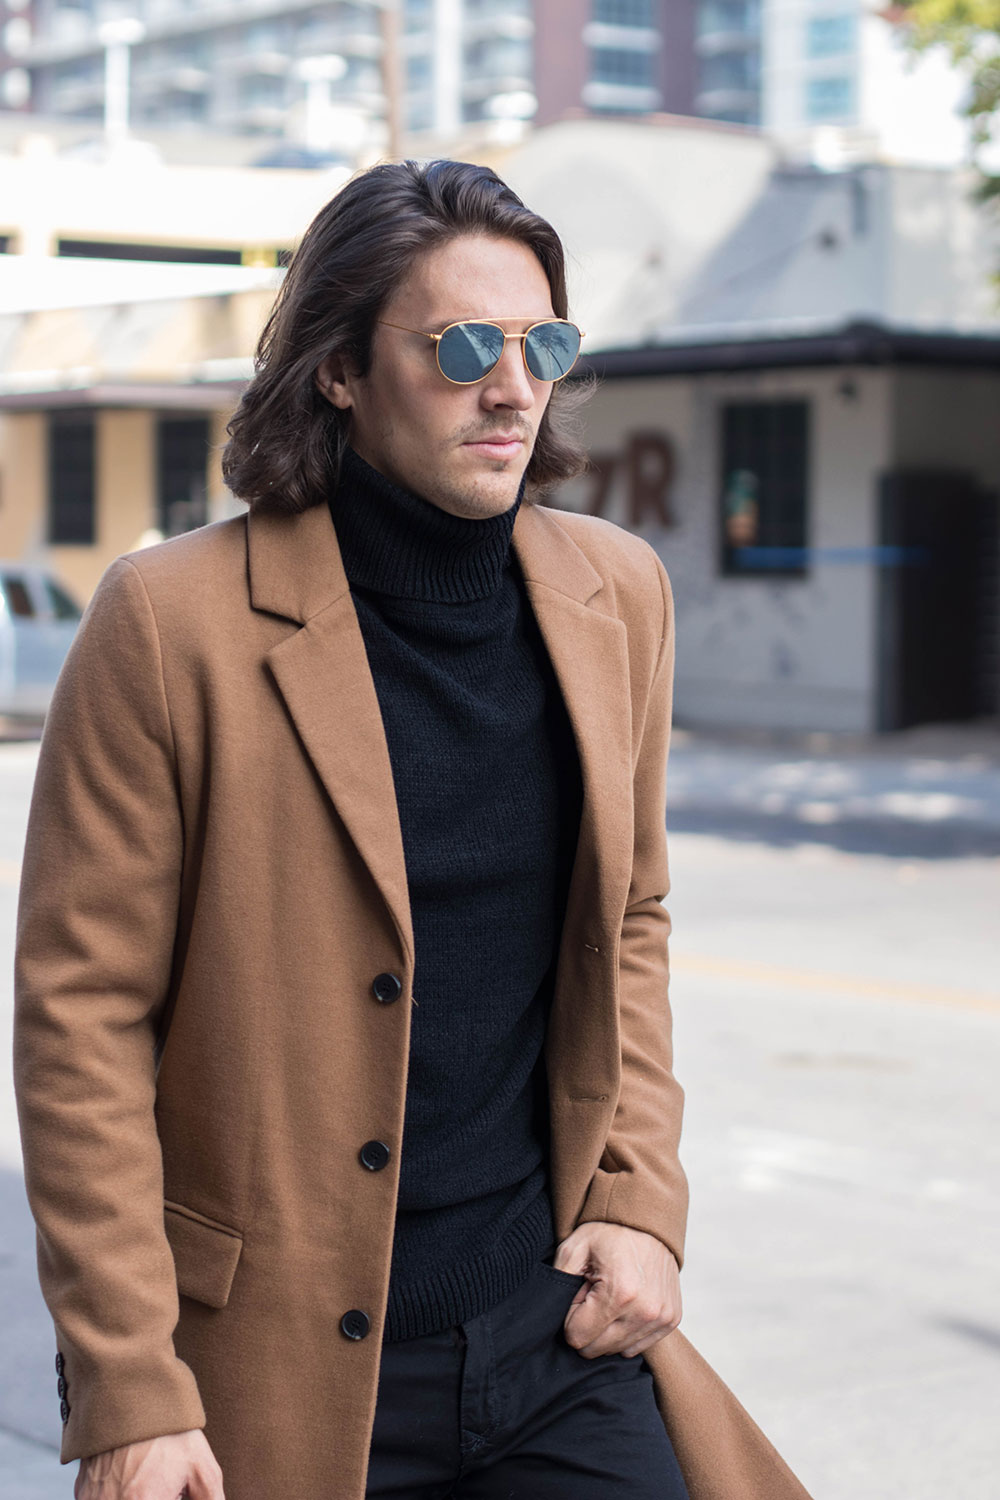 Mens Camel Overcoat with Black Sweater, Black Jeans and Brown Shoes